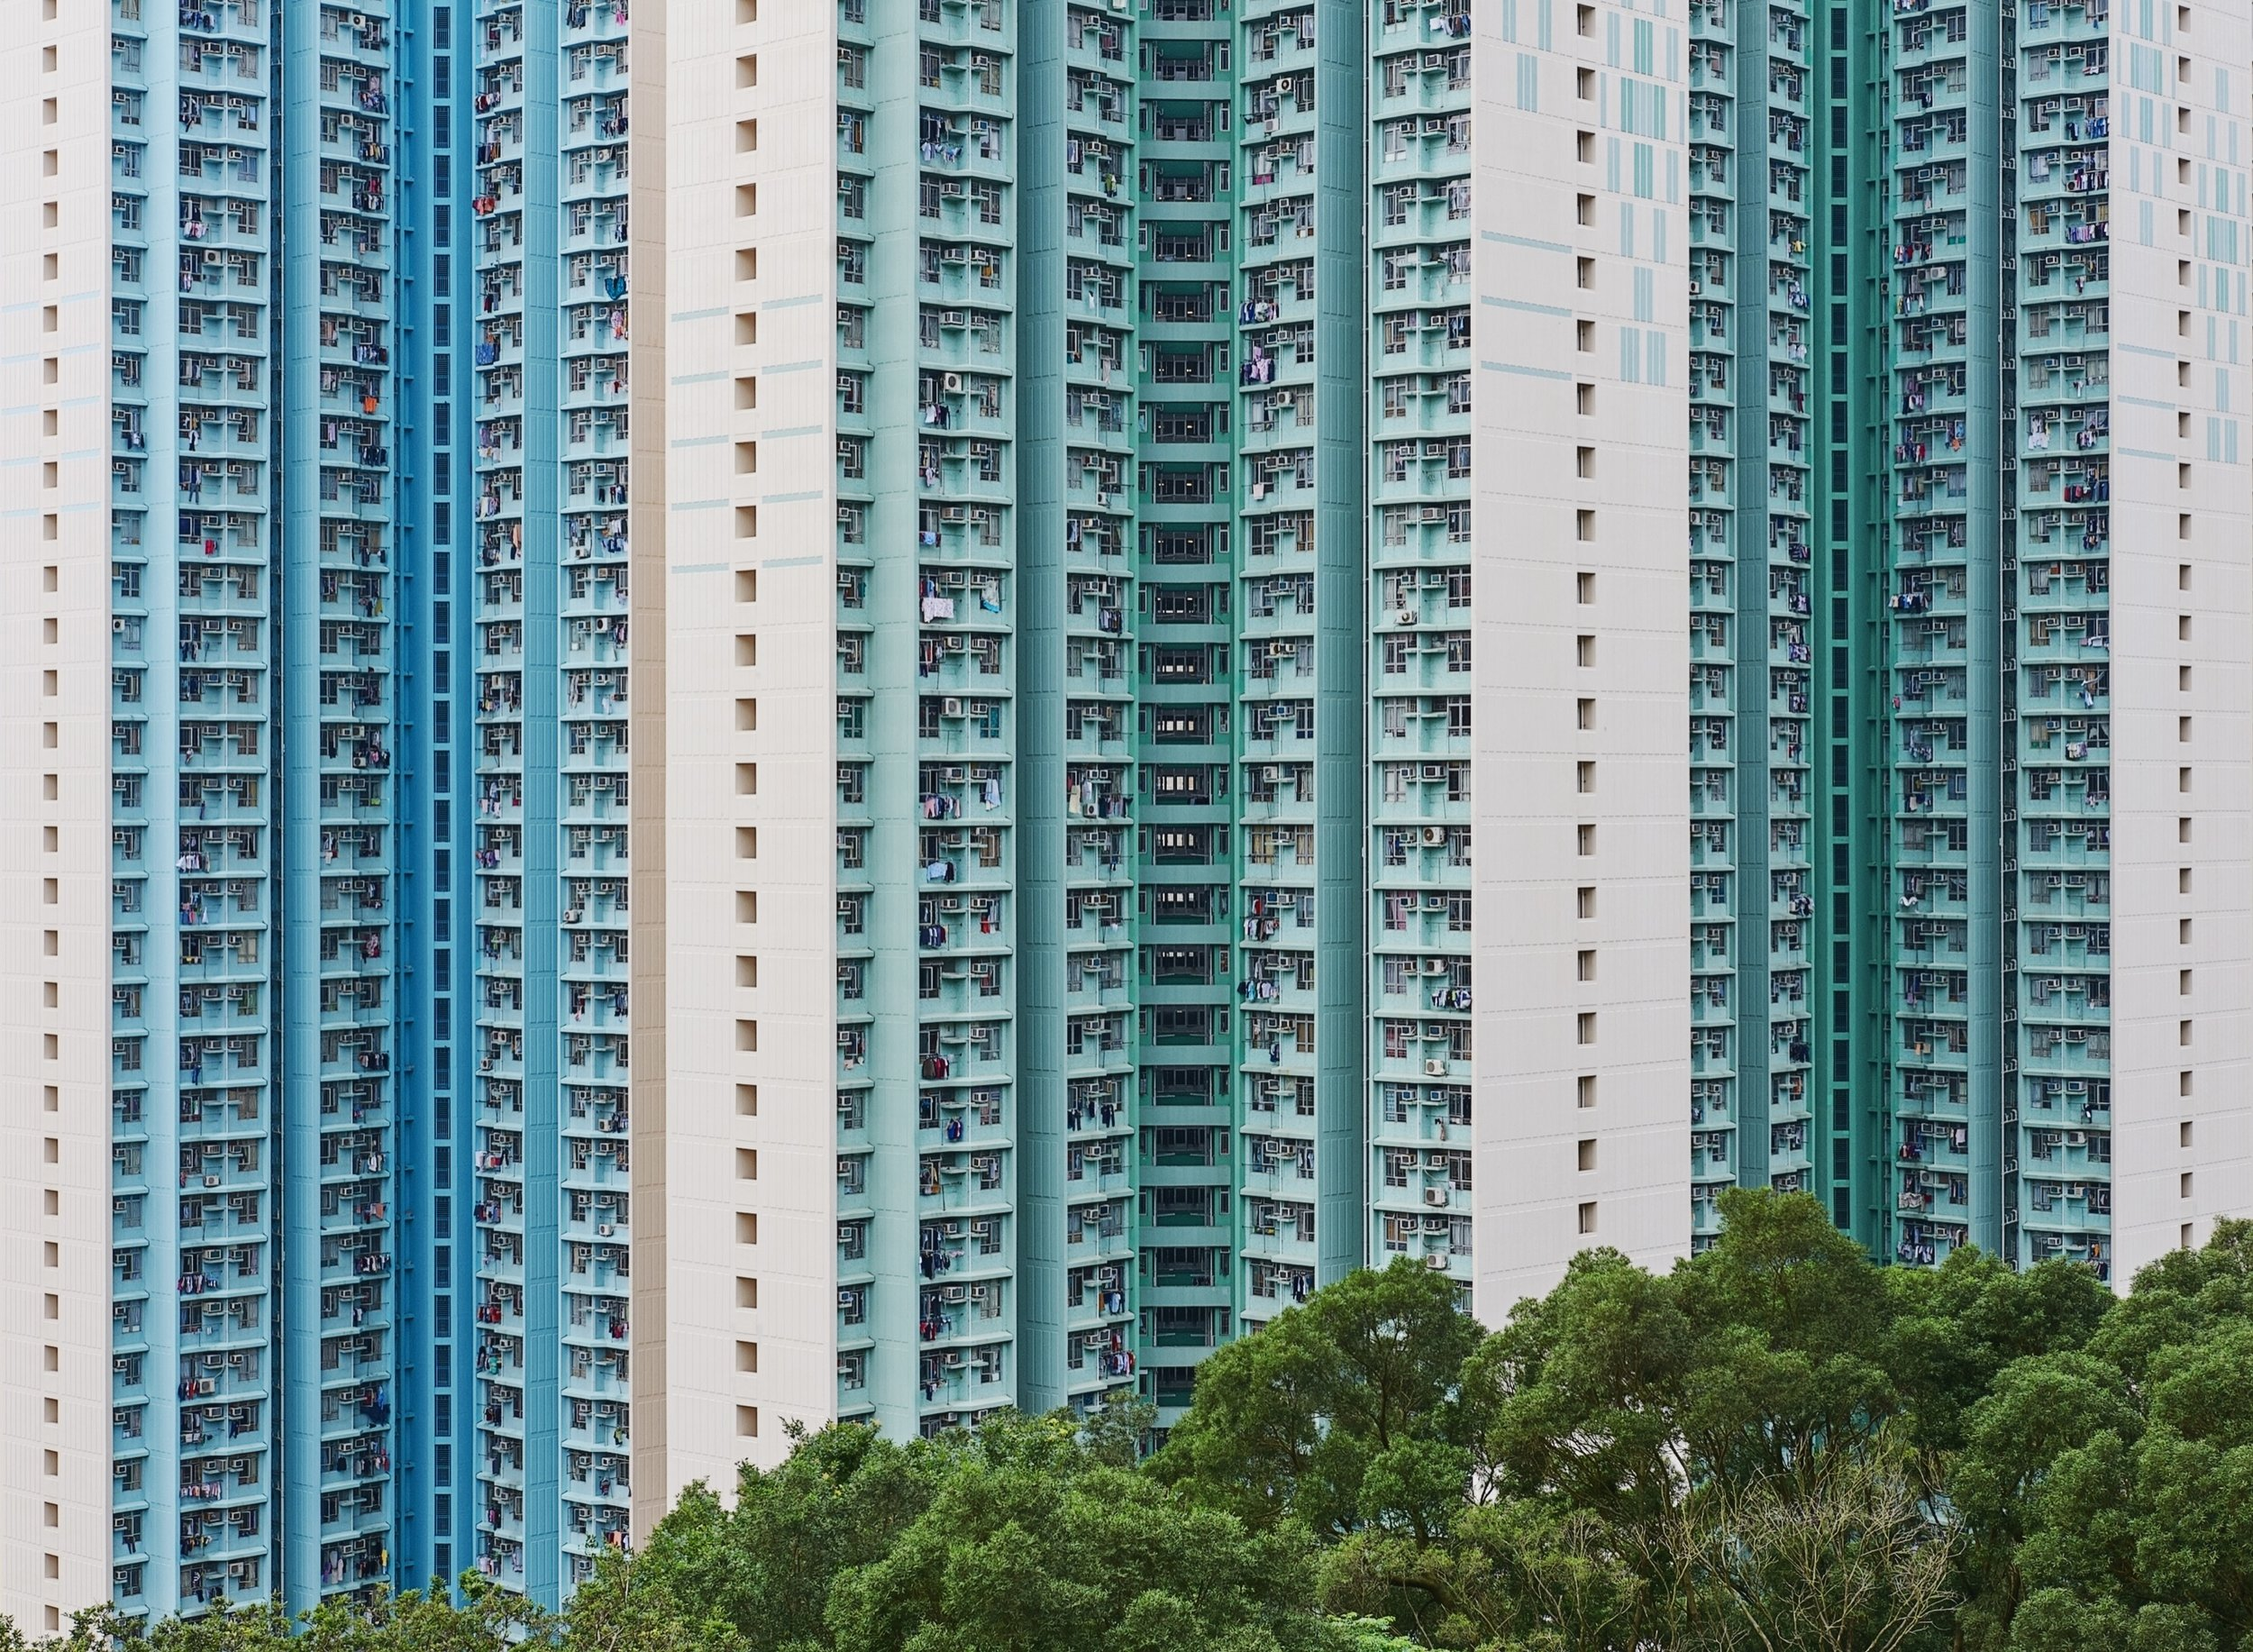 Accidental Architecture, Hong Kong